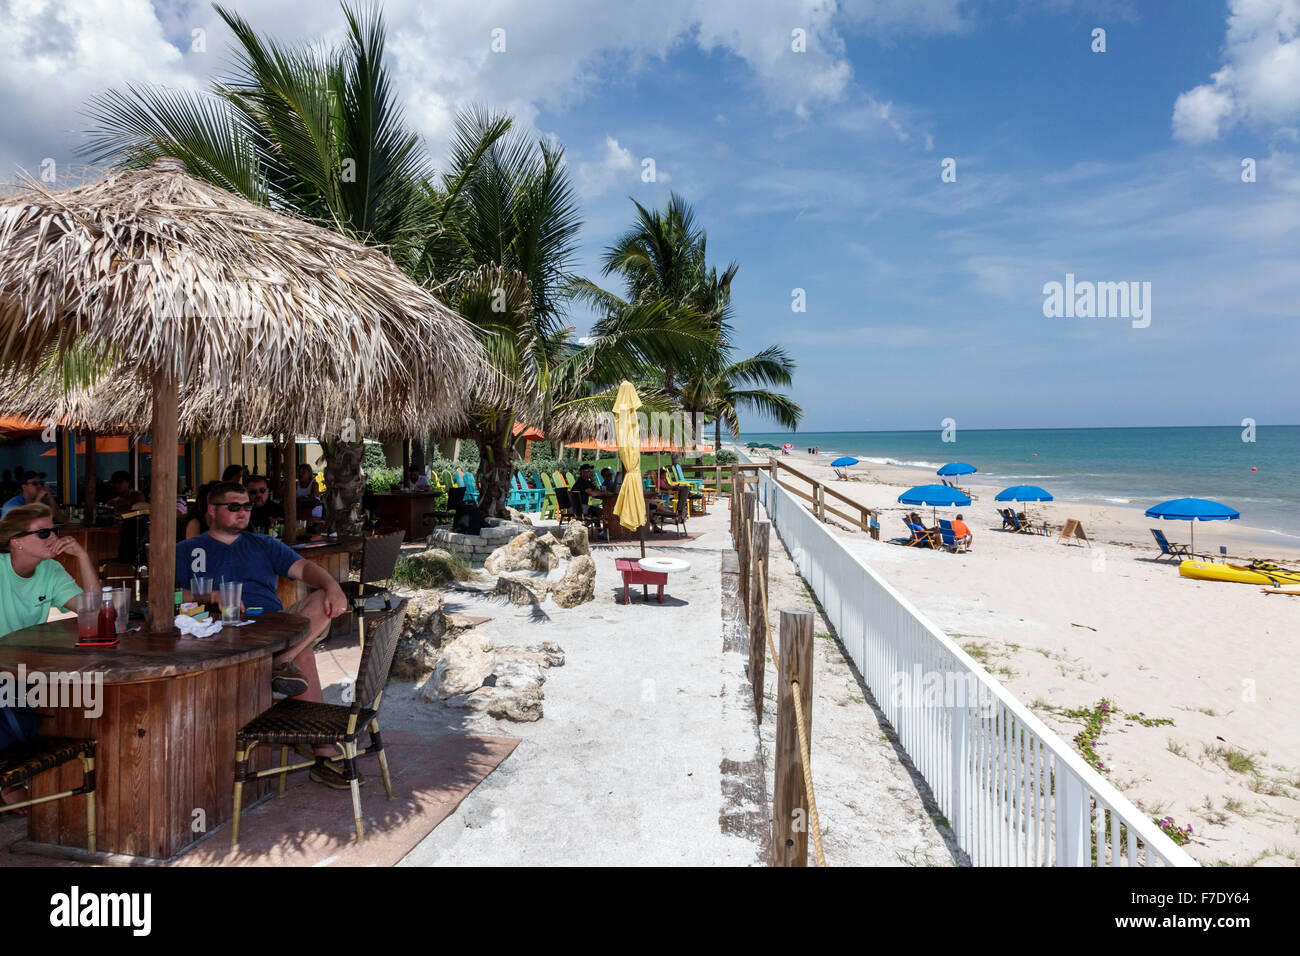 Vero Beach Florida North Hutchinson Orchid Island Mulligan's Beach House restaurant tiki style umbrella alfresco - Stock Image